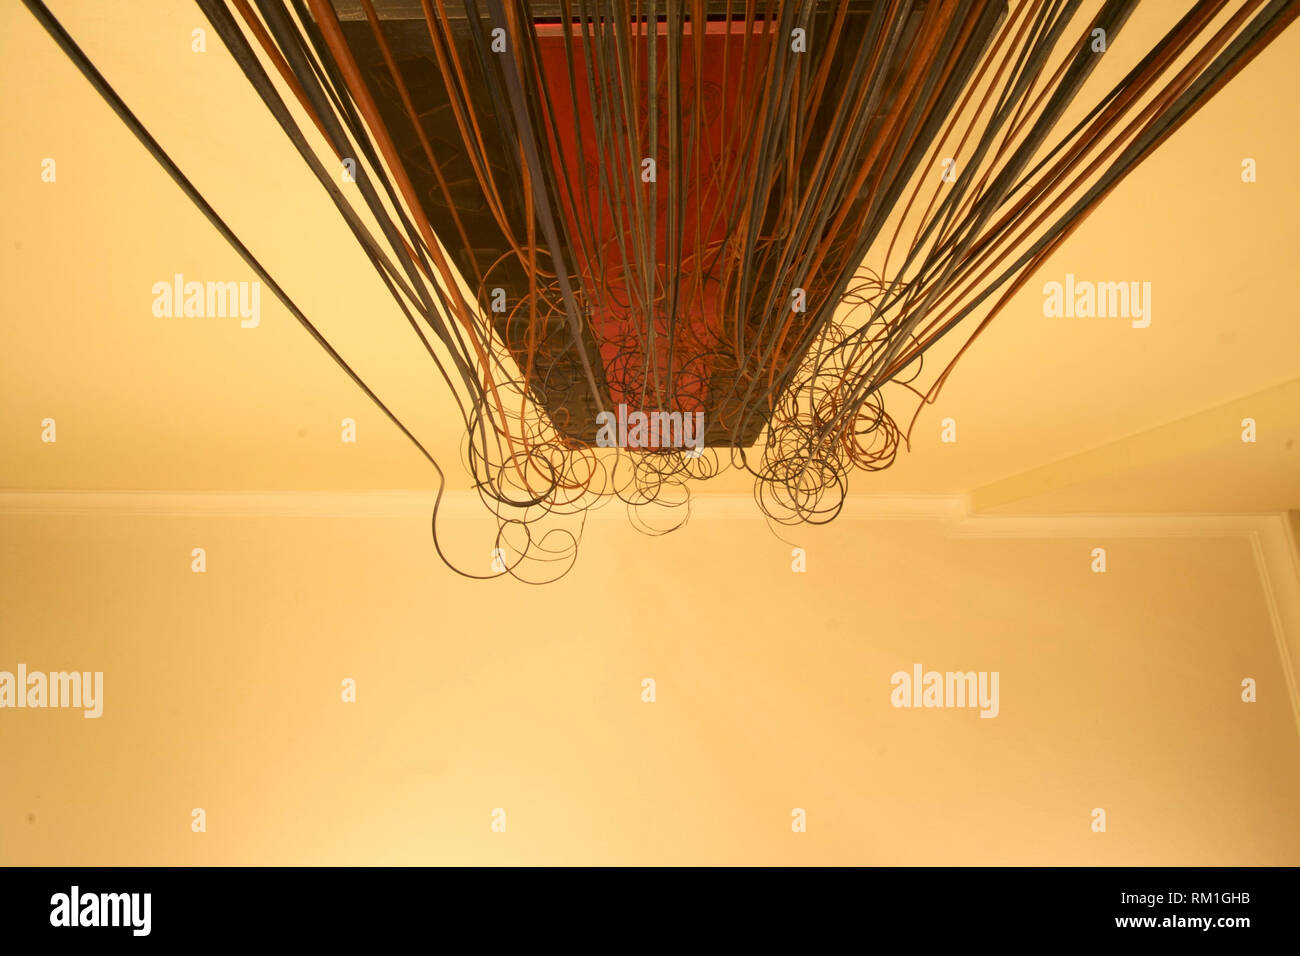 Dubai-Artpiece interior decoration 5 - Stock Image